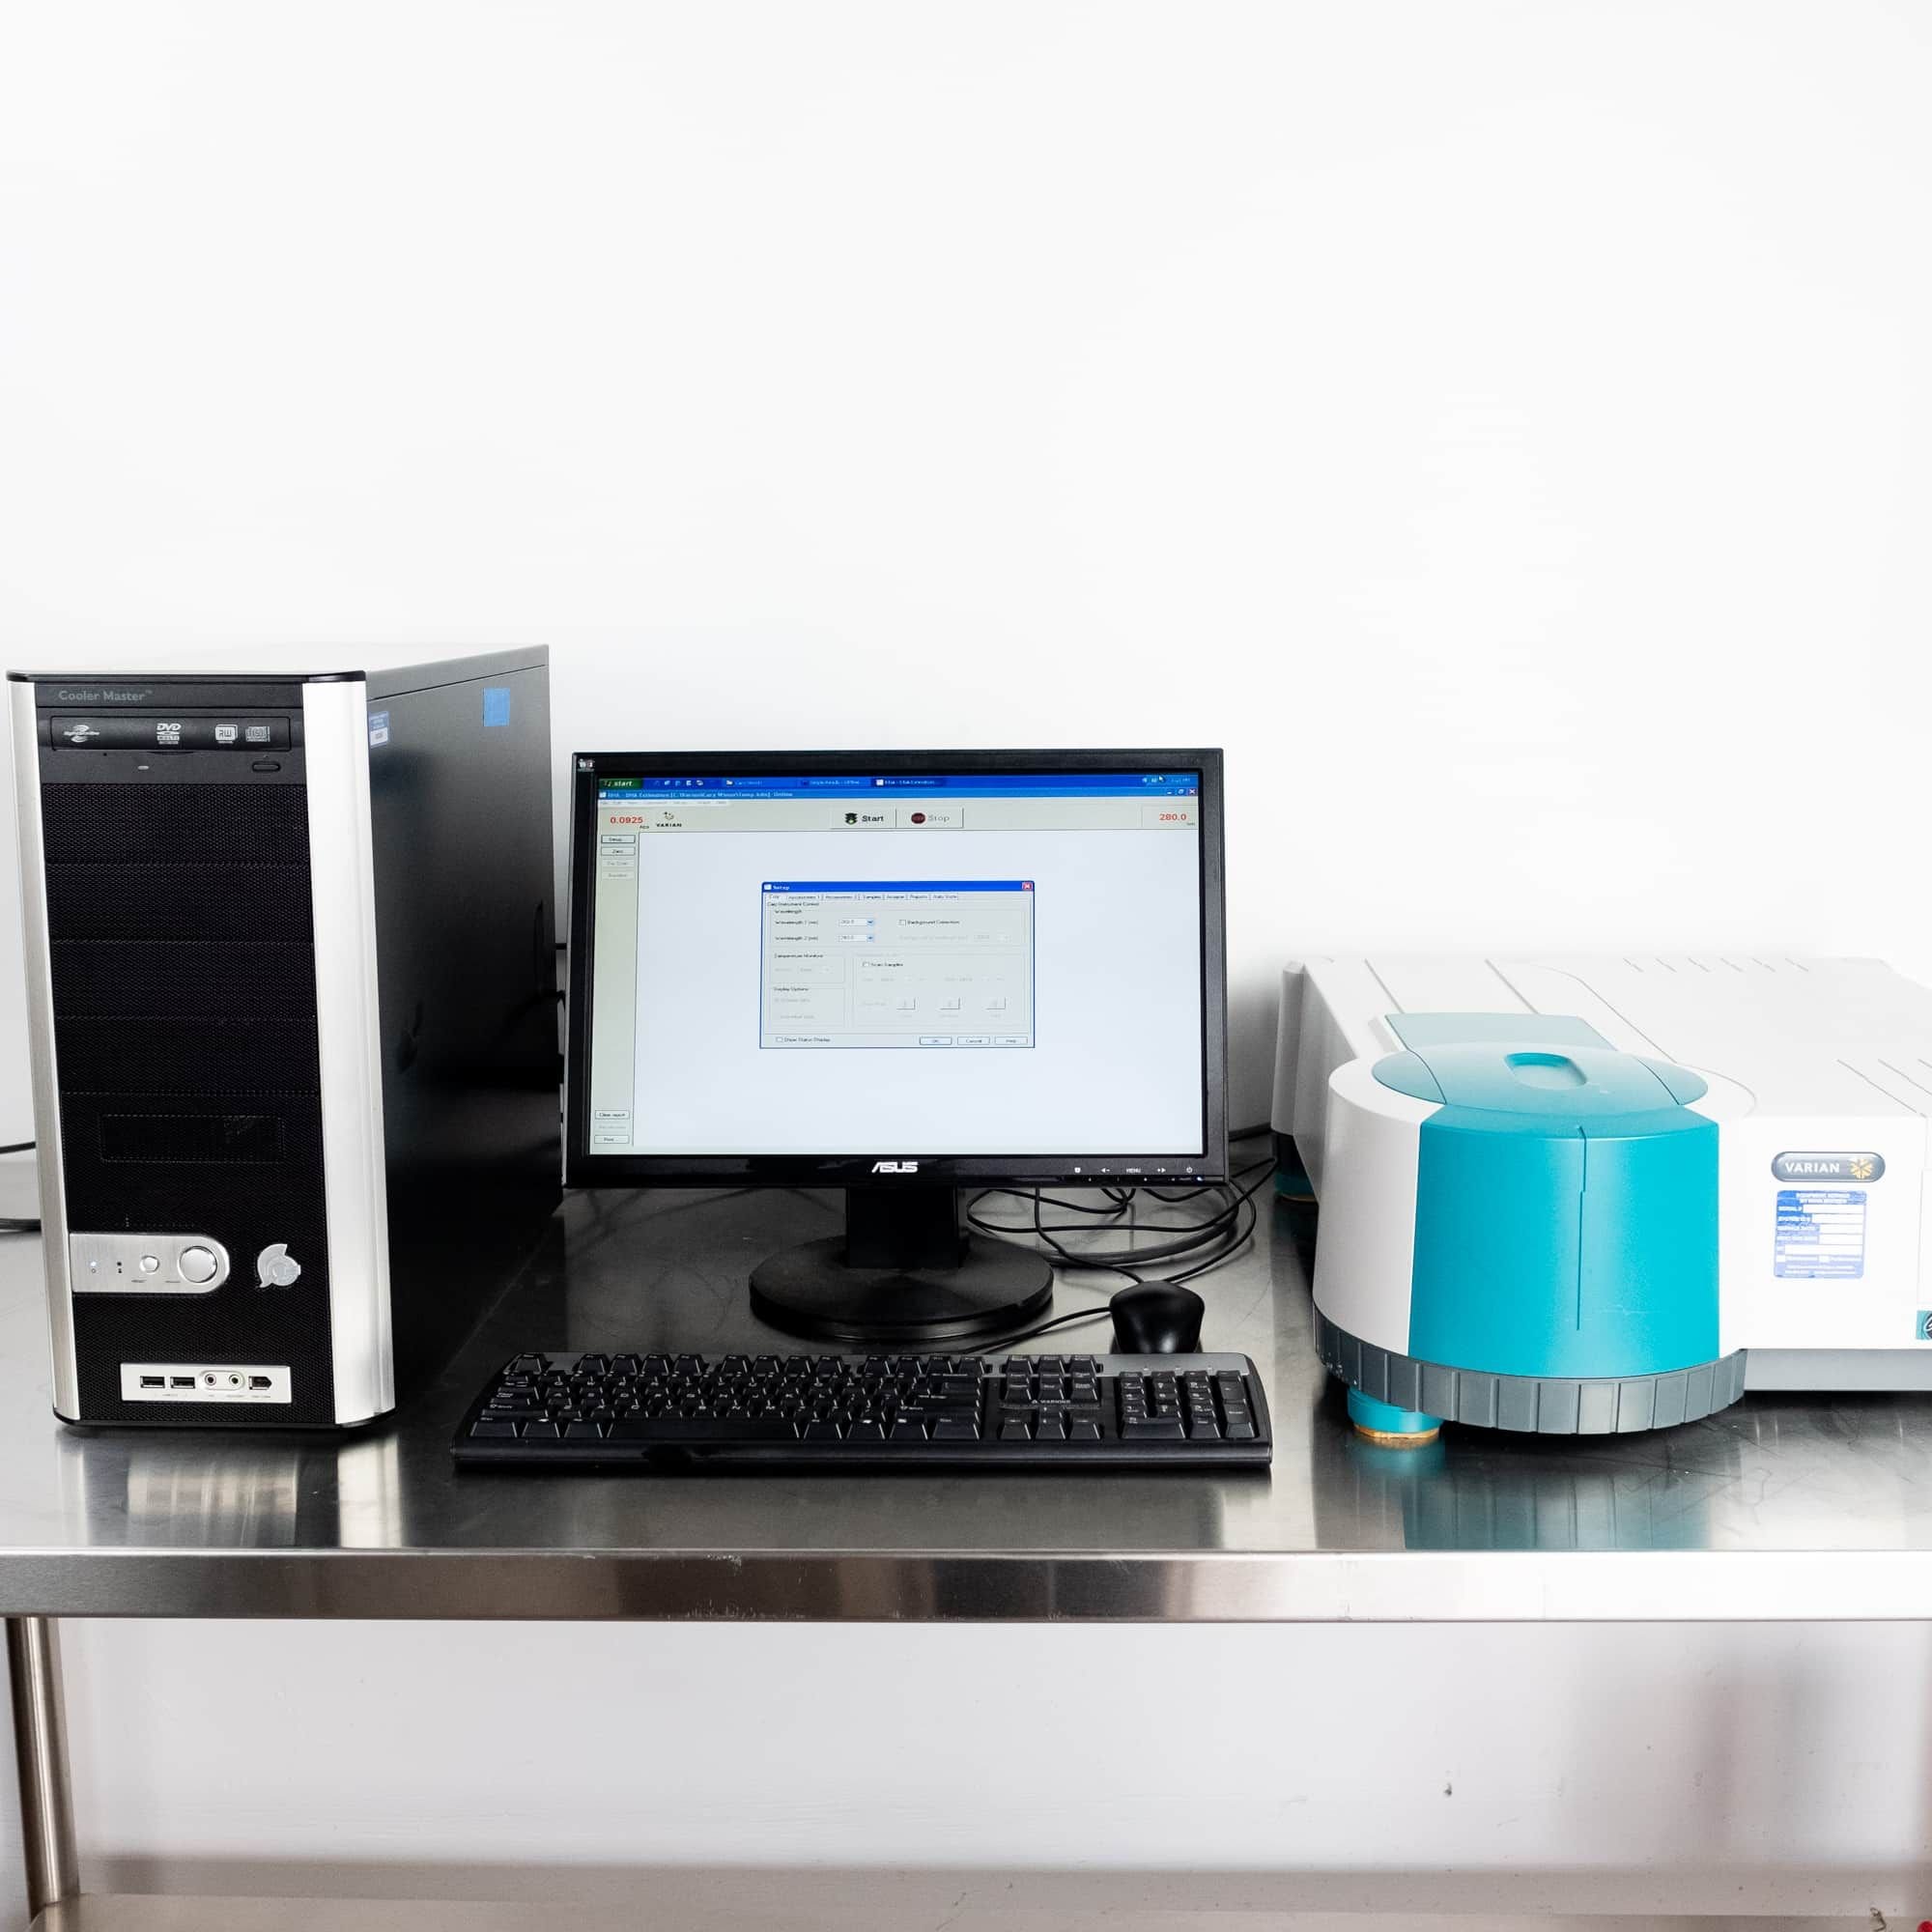 Varian Cary 50 UV-Vis Spectrophotometer with Computer and Software